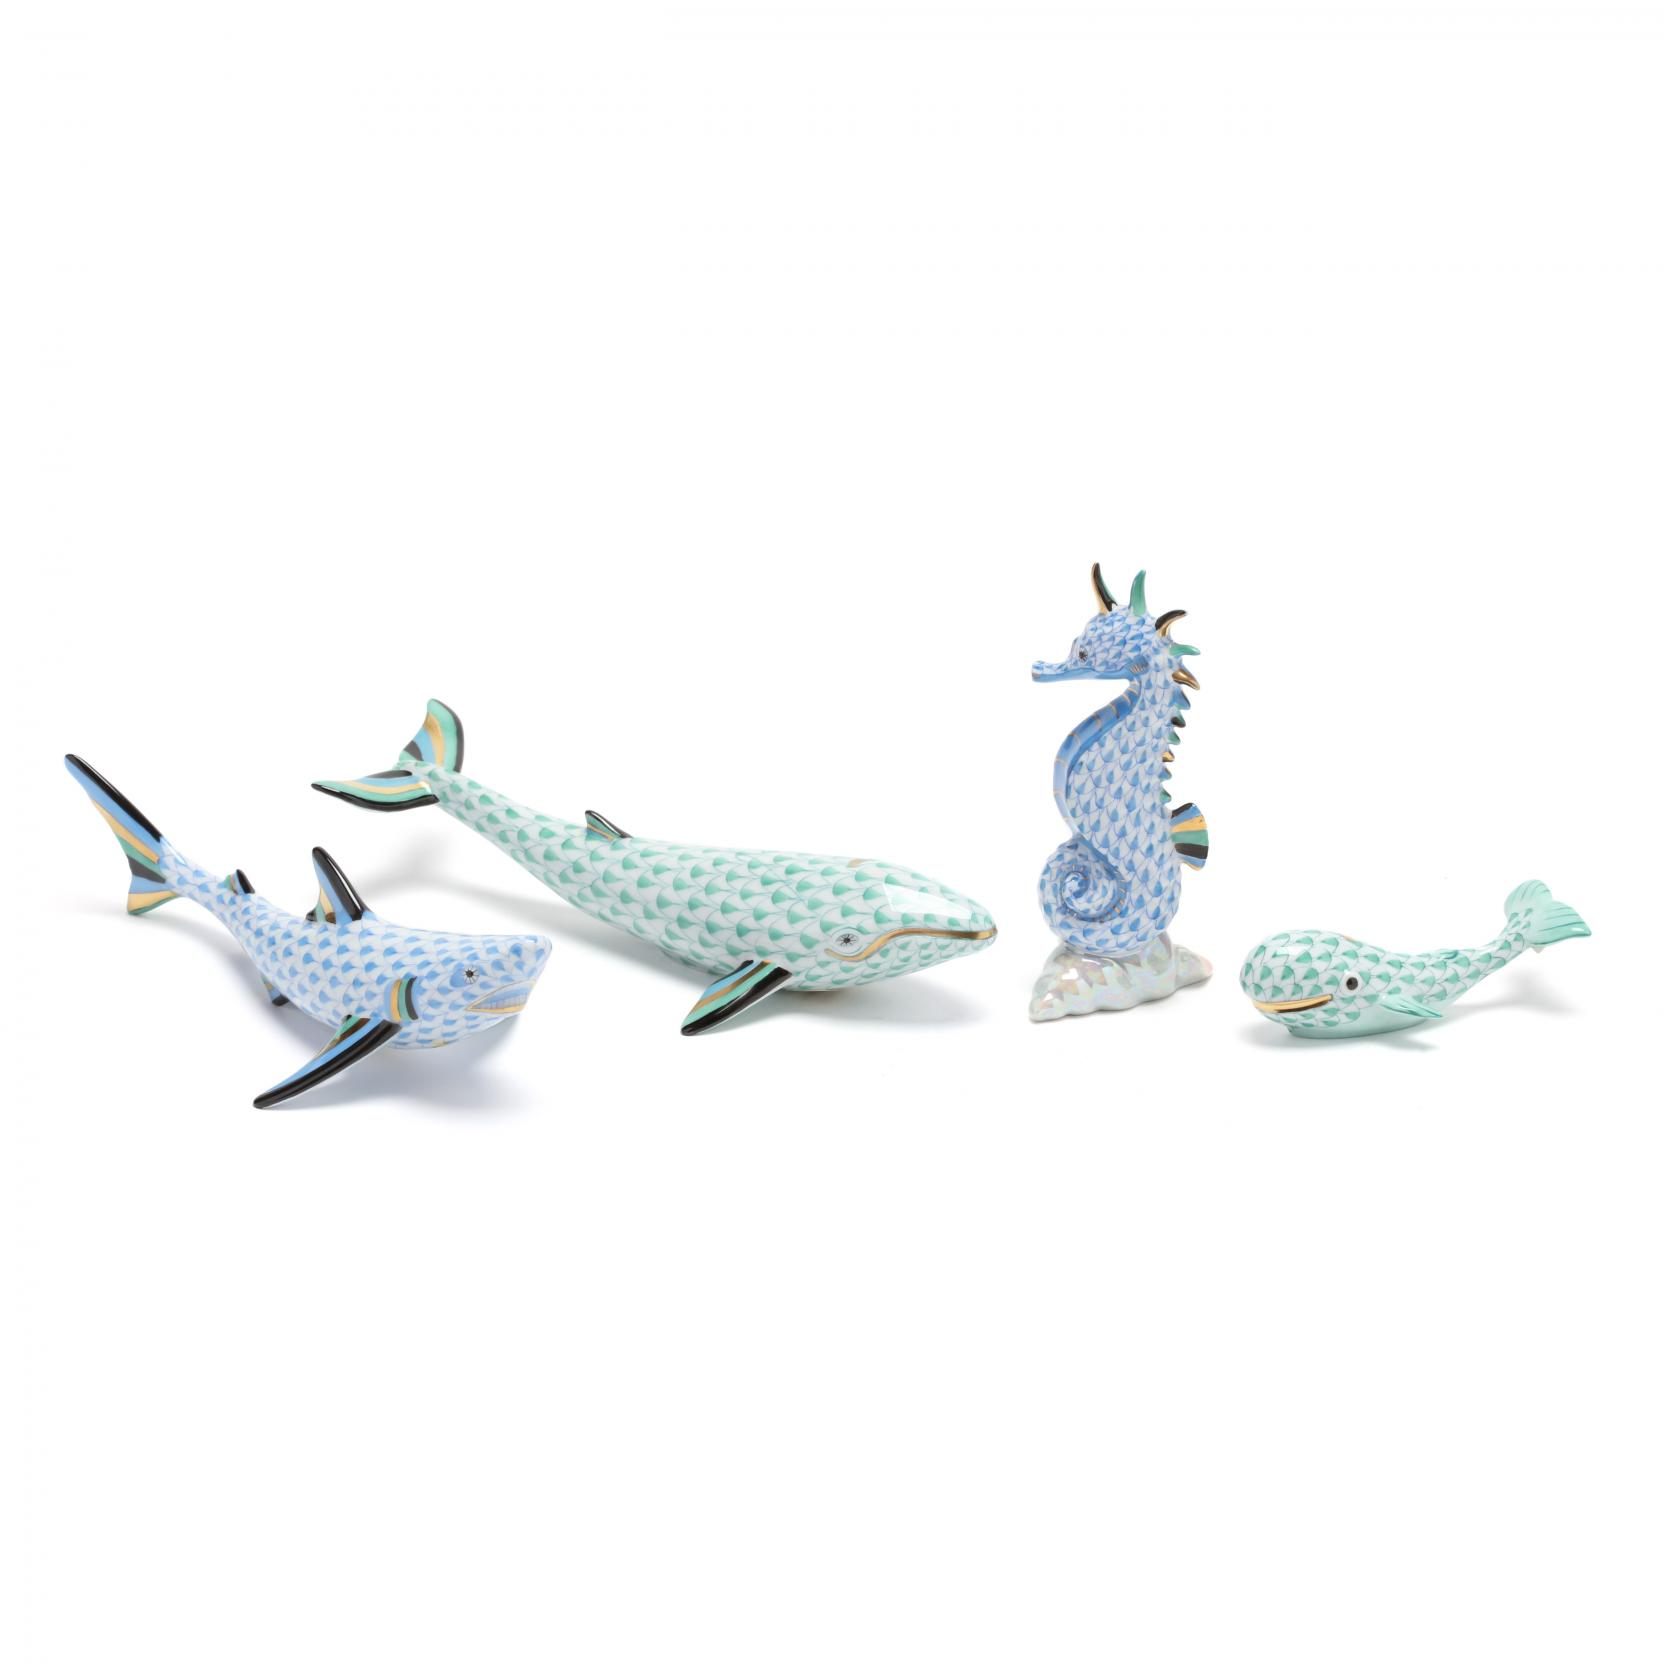 four-herend-porcelain-sea-animals